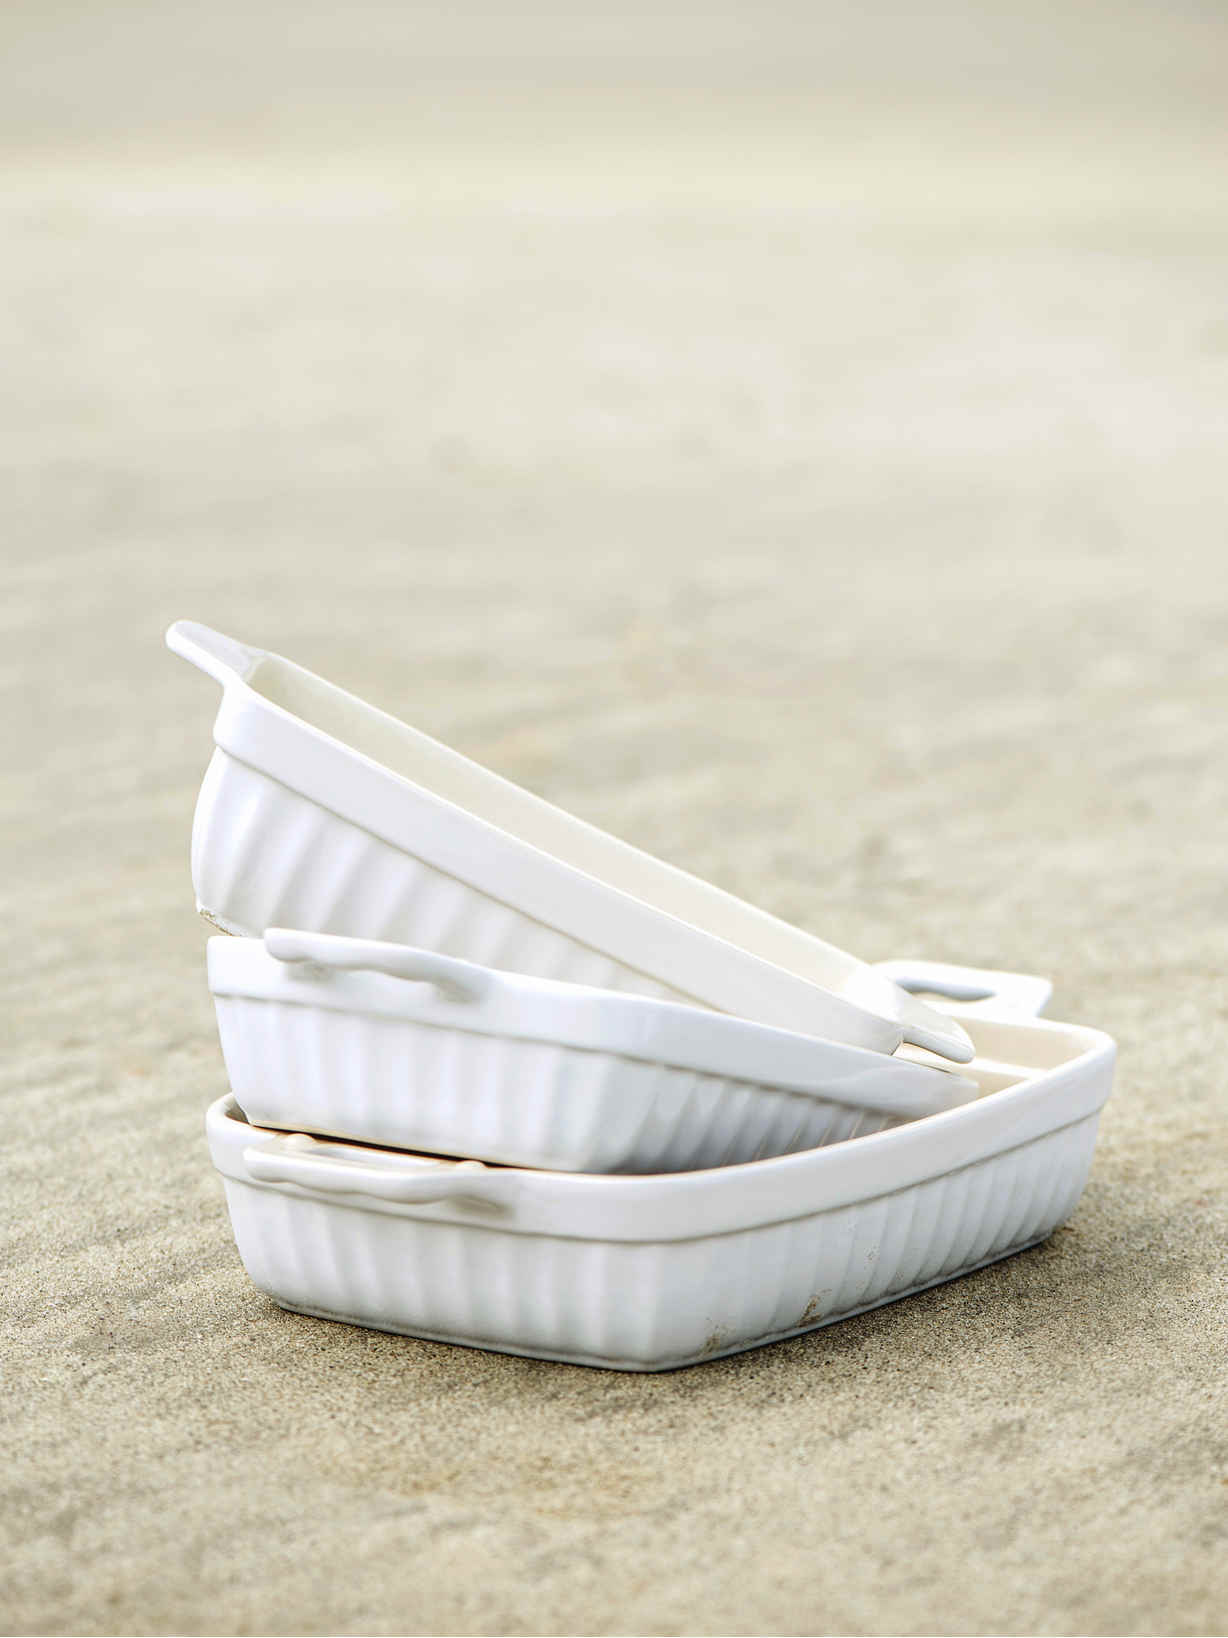 Nordic House Oven Dish - White